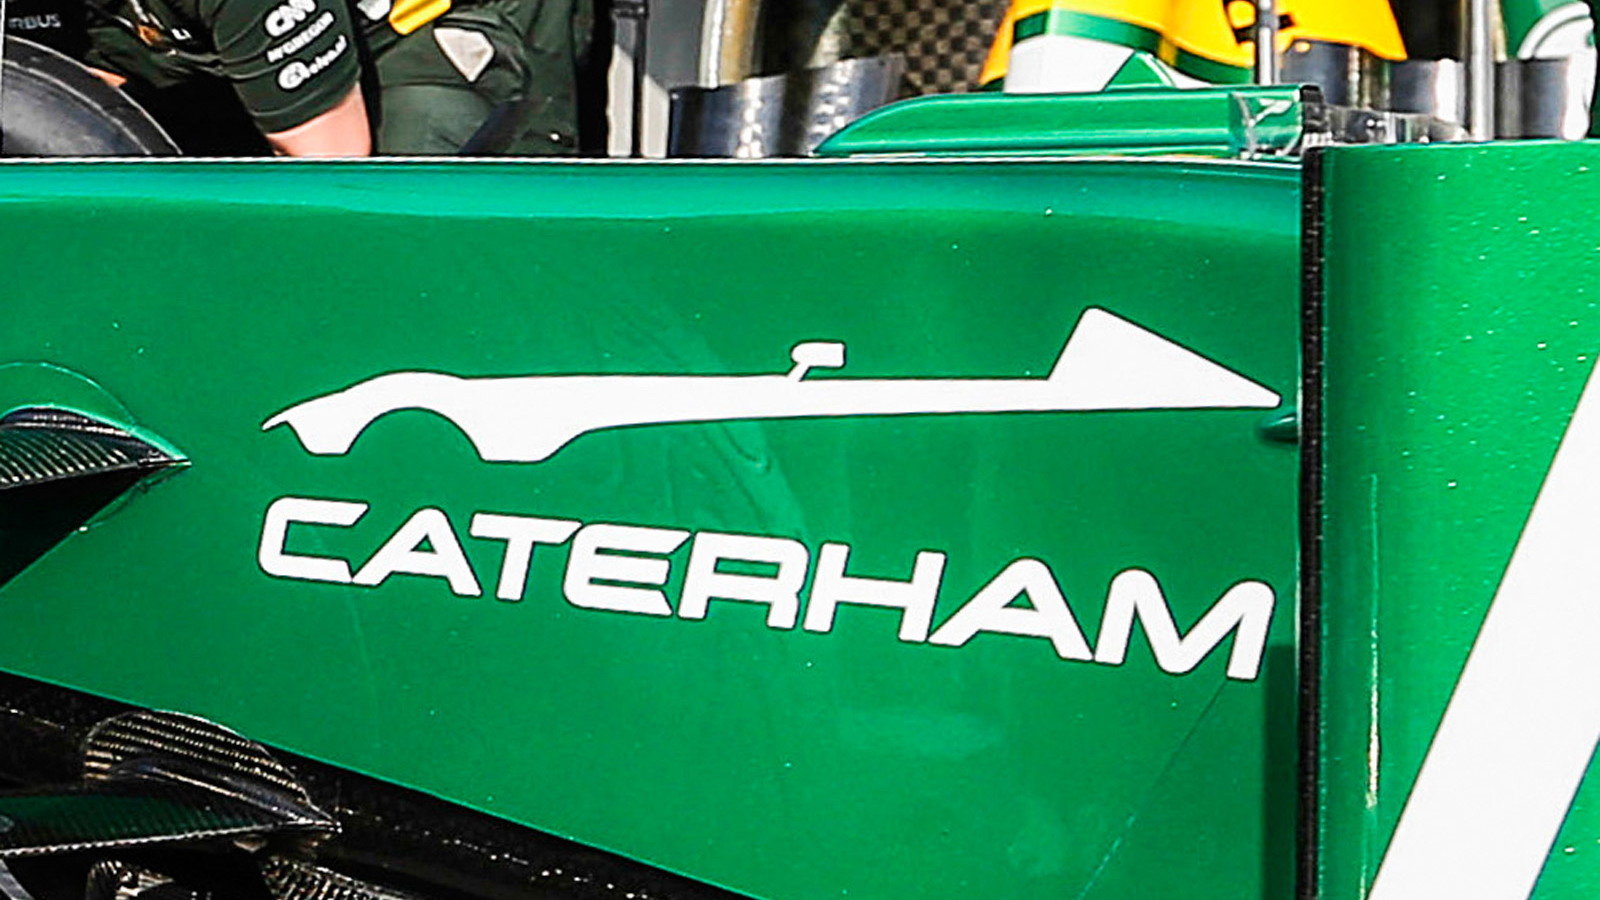 Teaser for 2016 Caterham sports car